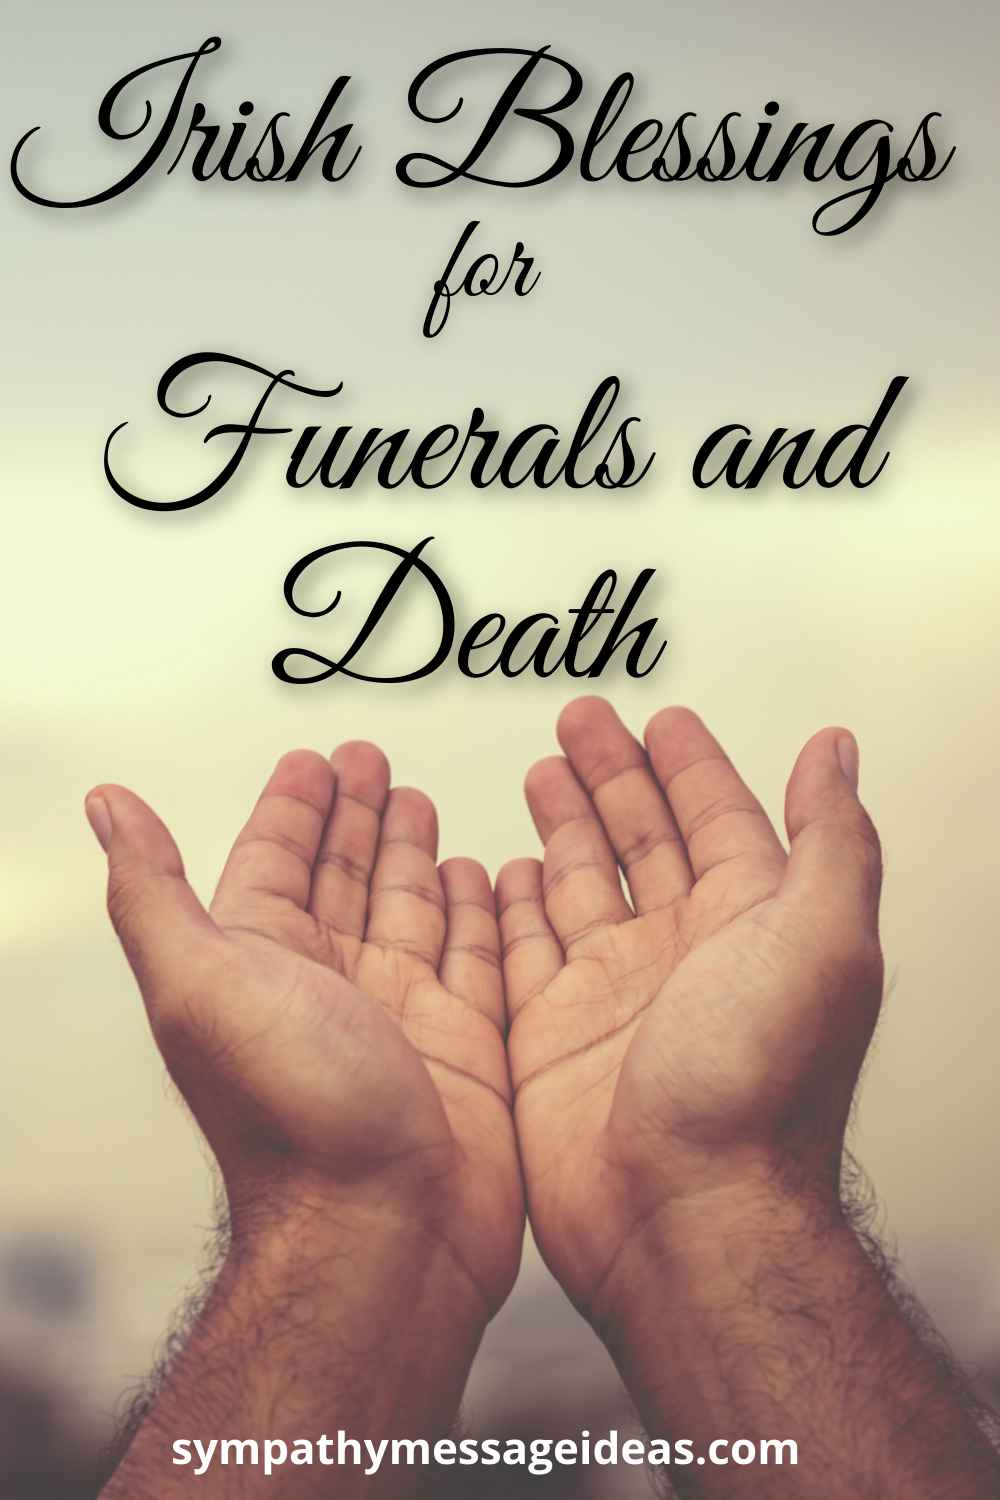 irish blessings for funeral and death